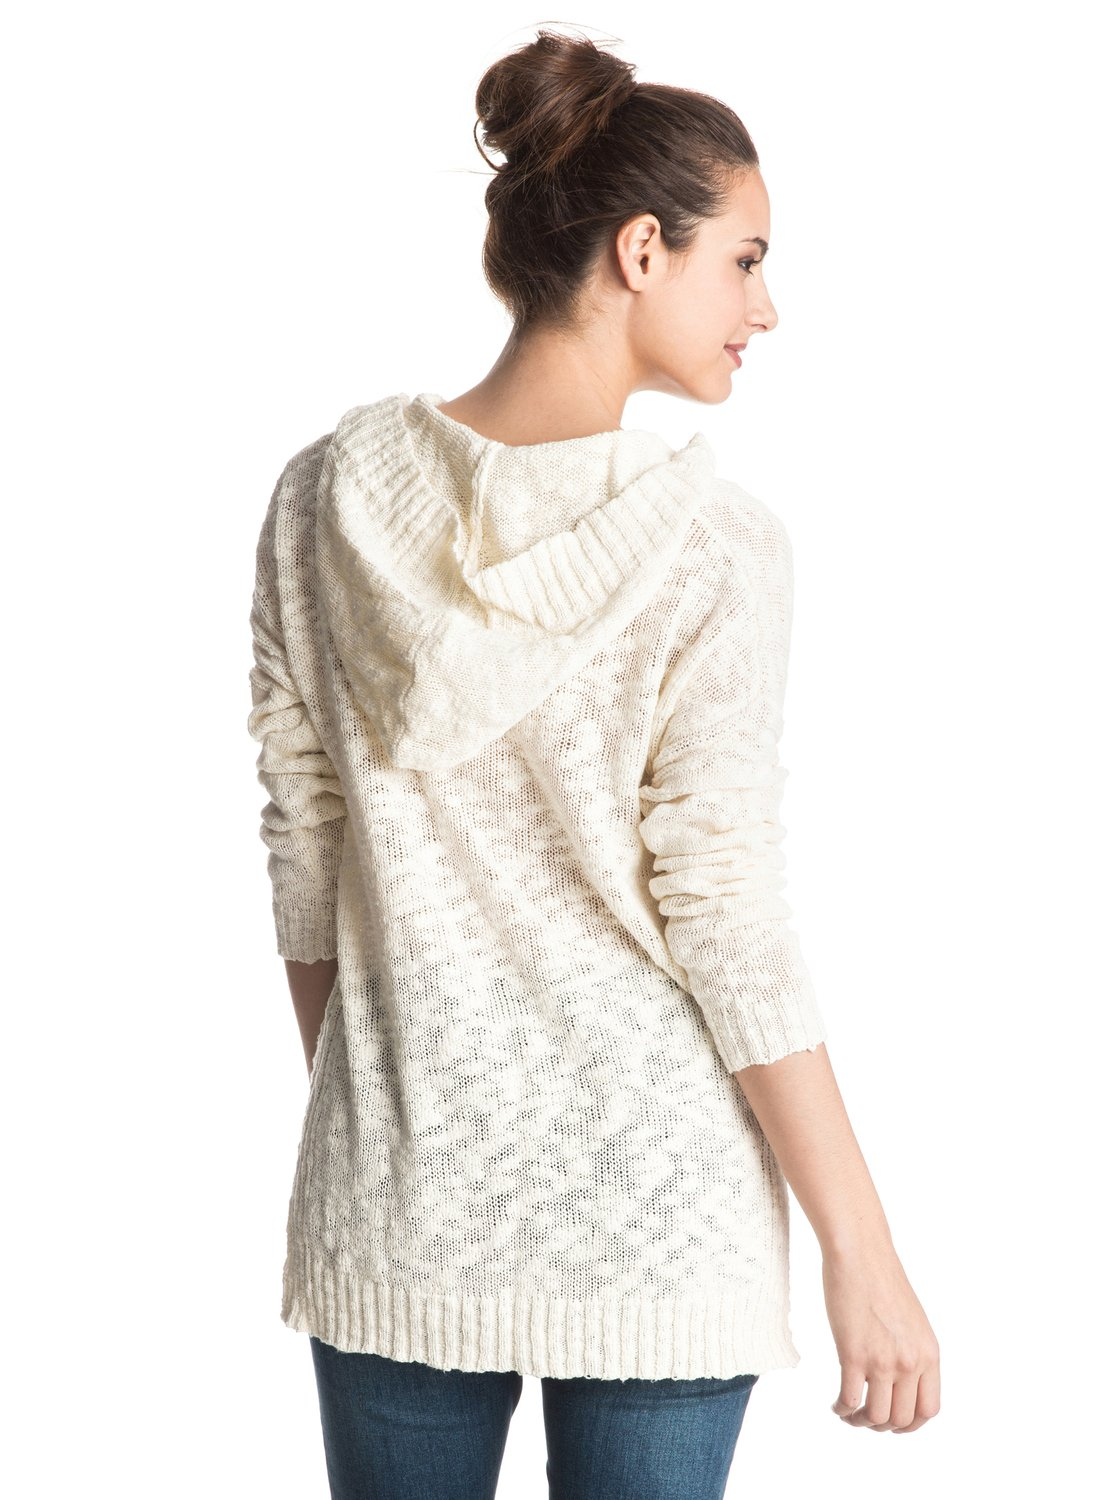 Long White Summer Sweater | Dress images